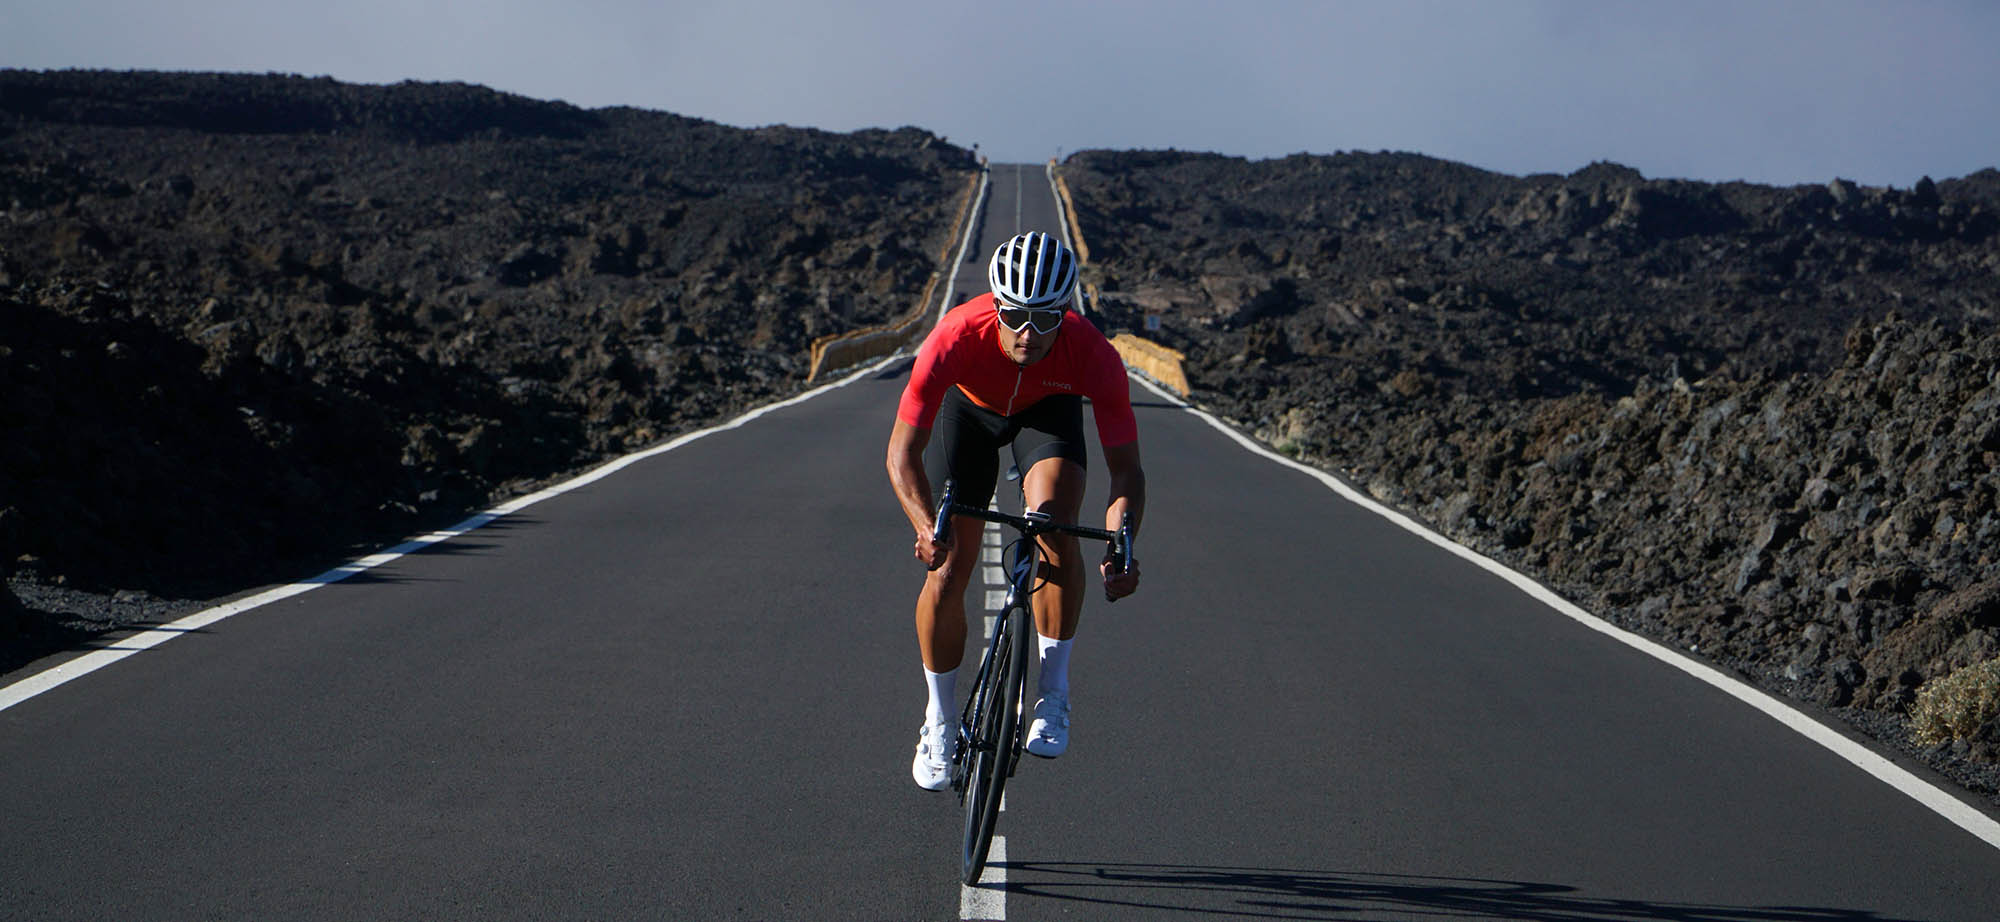 luxa sunset jersey tested on sunny Tenerife island